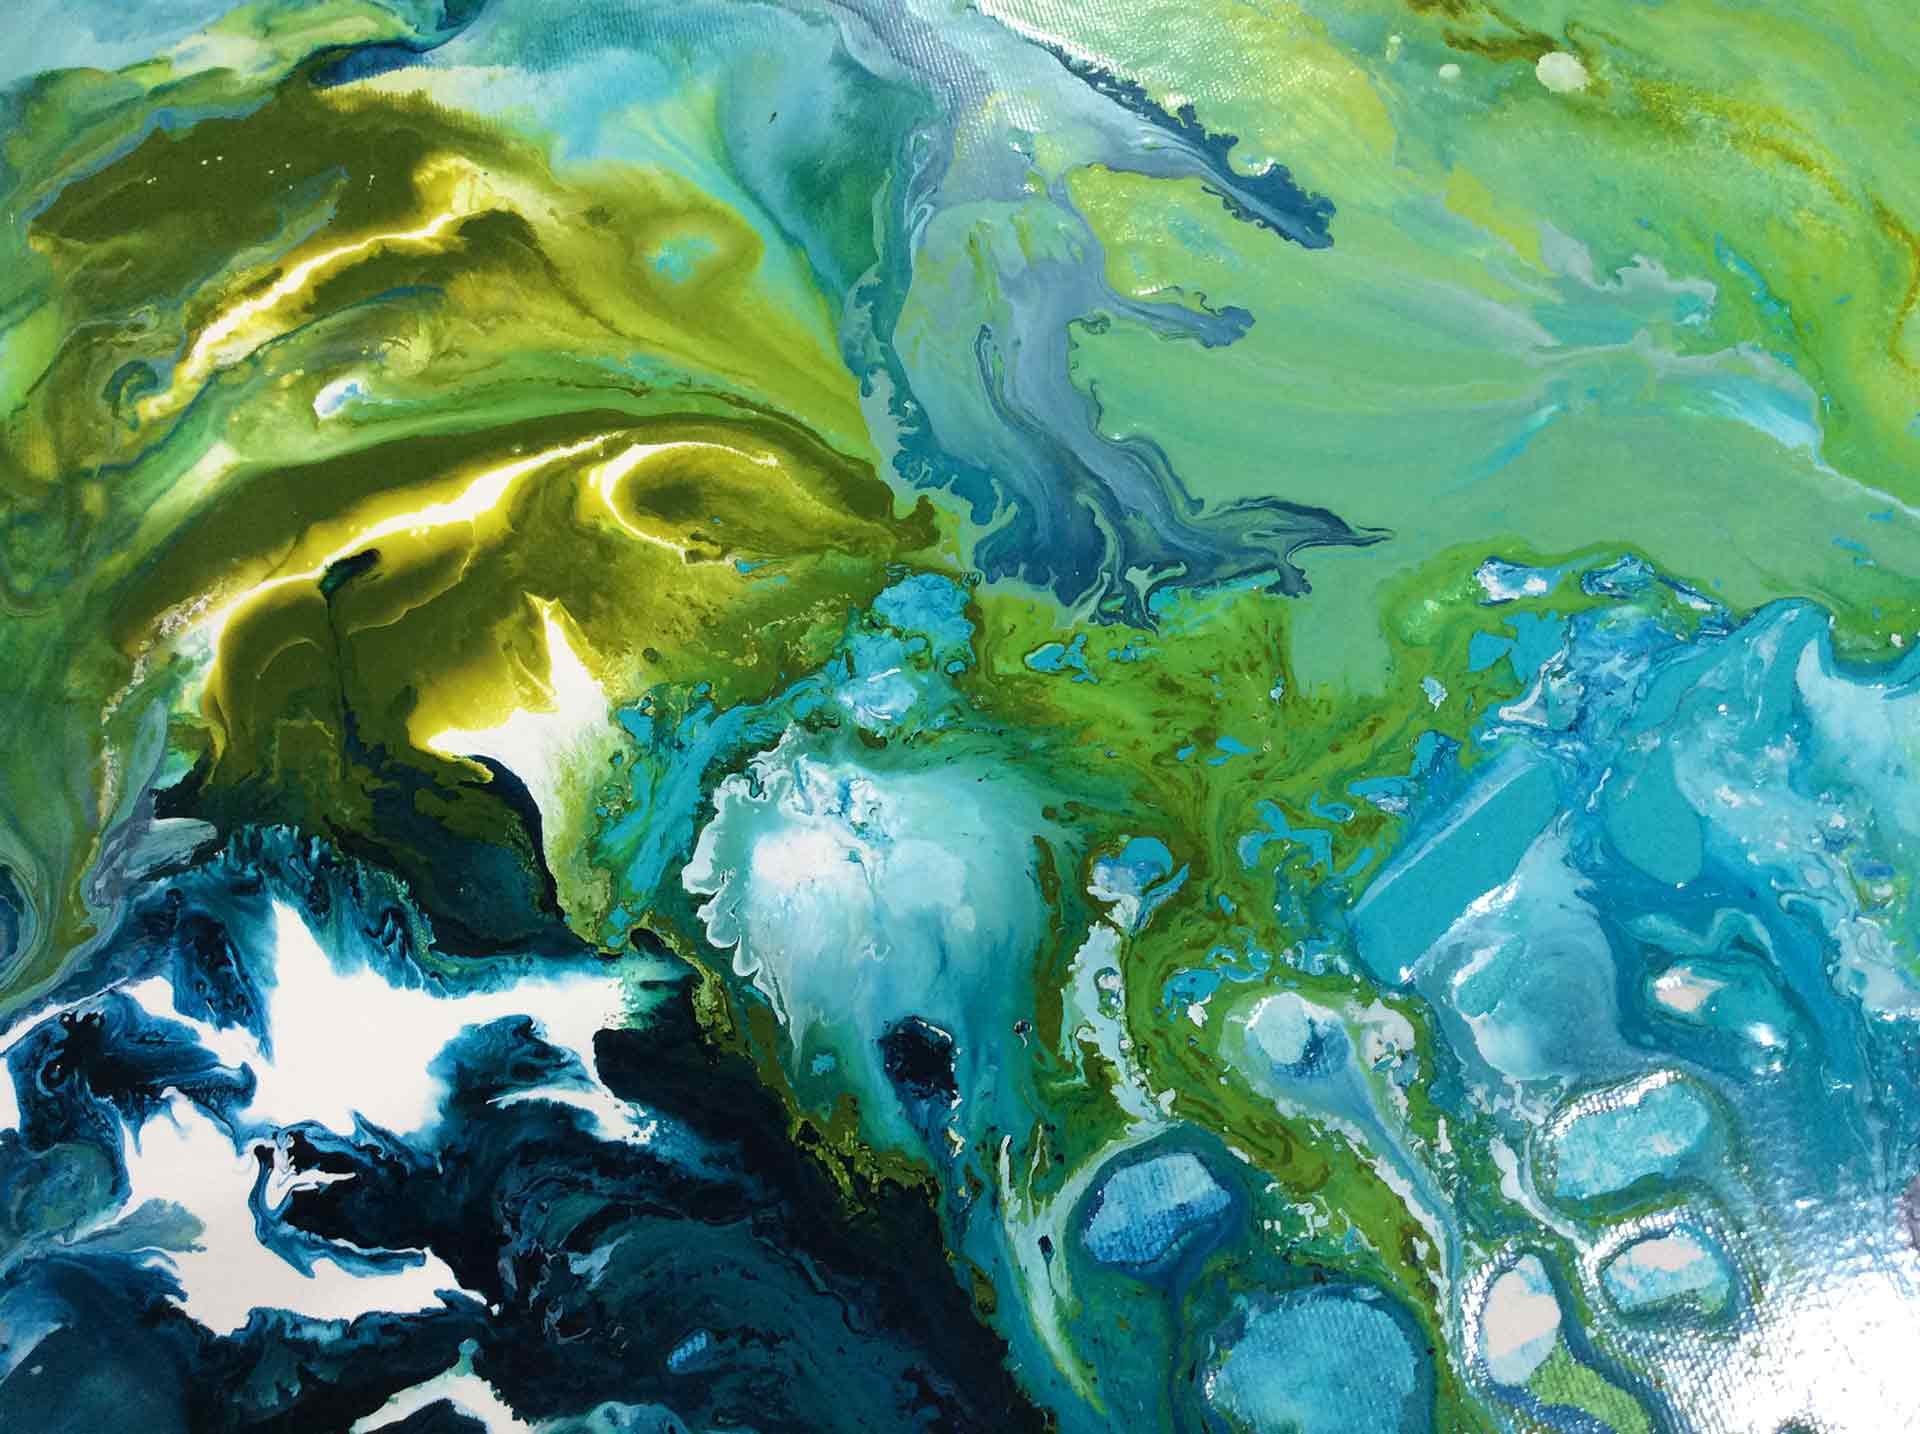 Abstract acrylic painting shades of green and blue by Diana Zoe Coop 2020